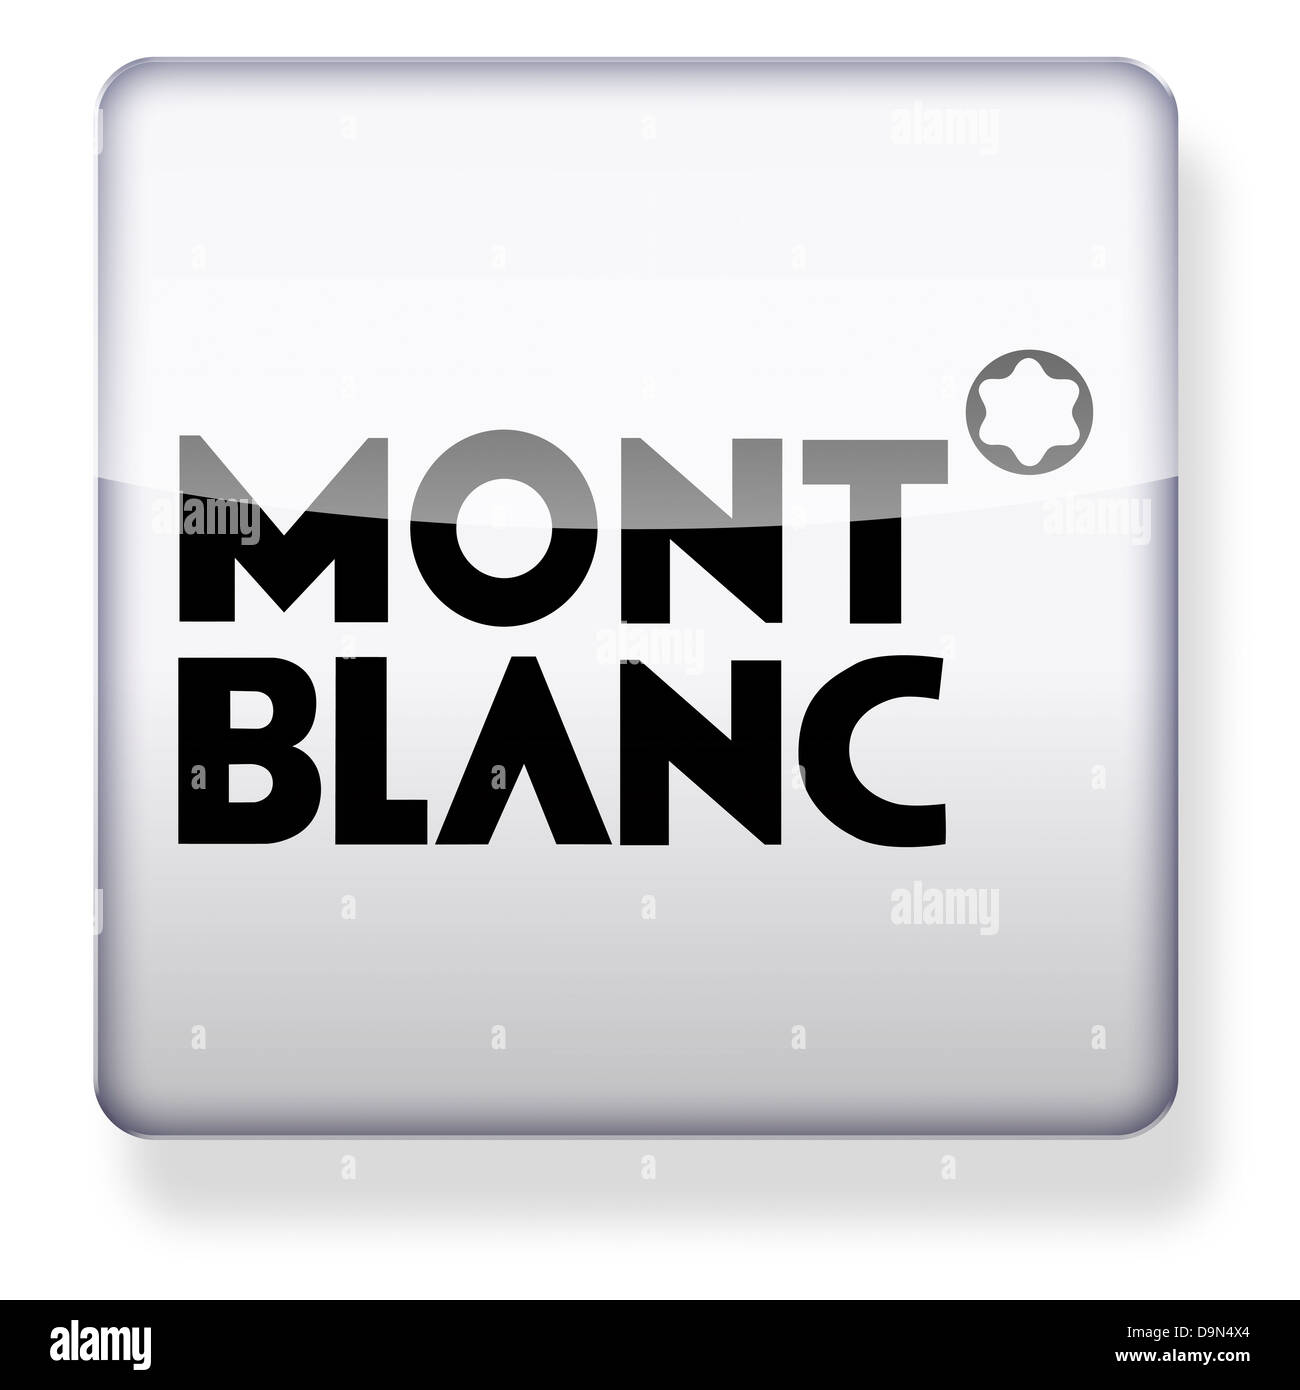 Mont Blanc logo as an app icon. Clipping path included. - Stock Image